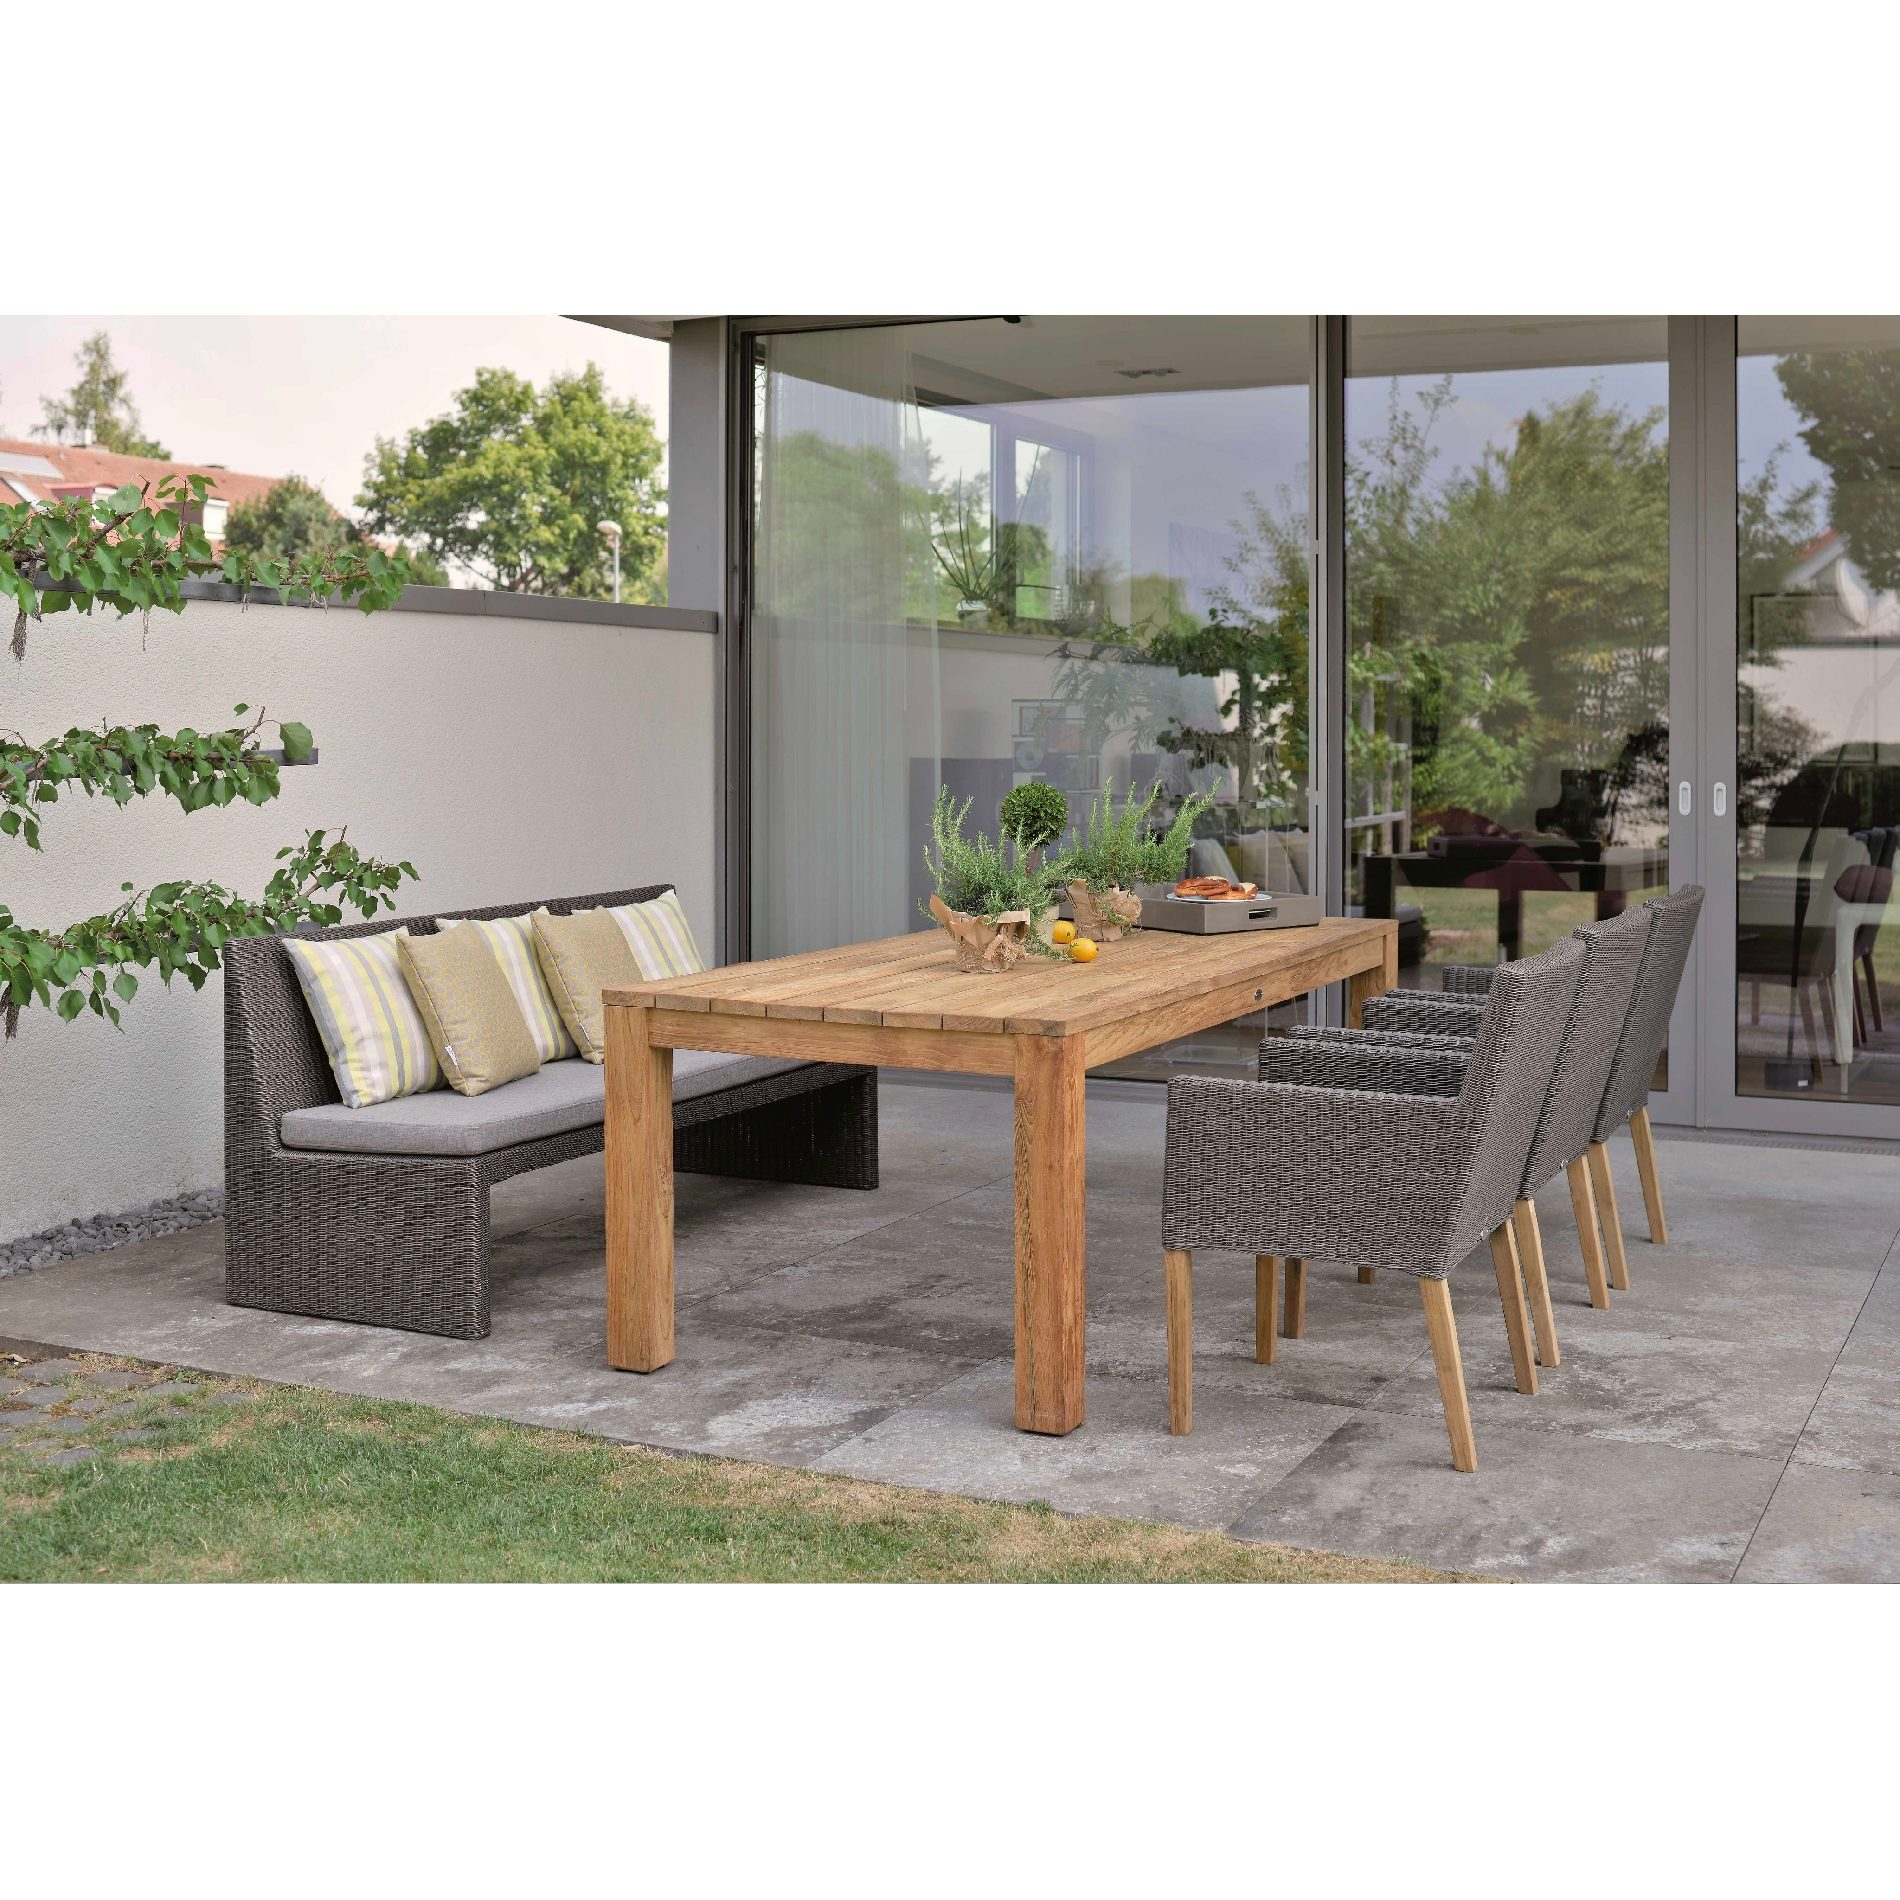 stern gartenm bel set mit stuhl pep bank noel und. Black Bedroom Furniture Sets. Home Design Ideas